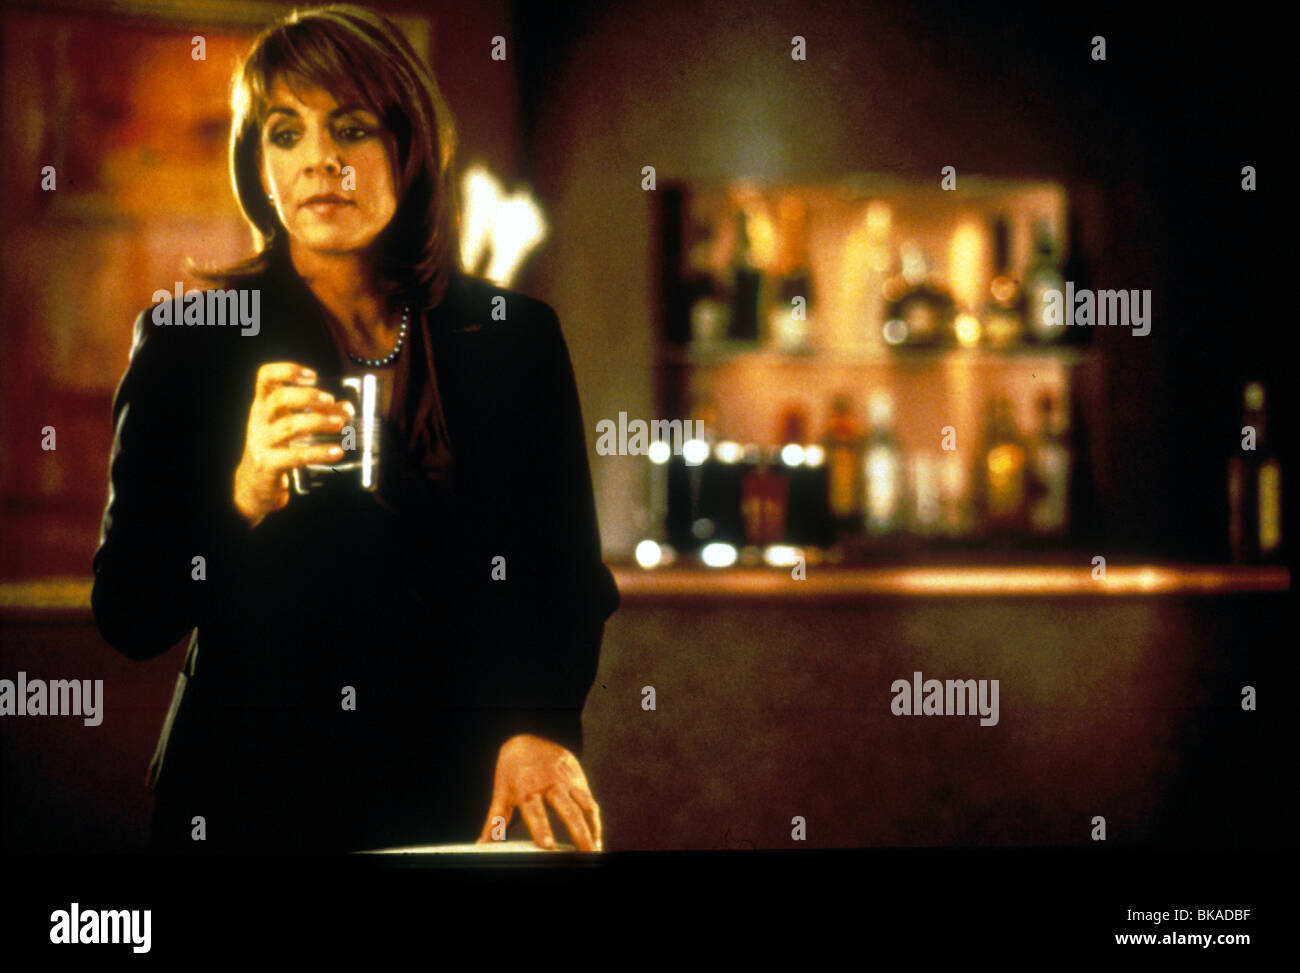 THE BUSINESS OF STRANGERS (2001) STOCKARD CHANNING TBOS 003 - Stock Image